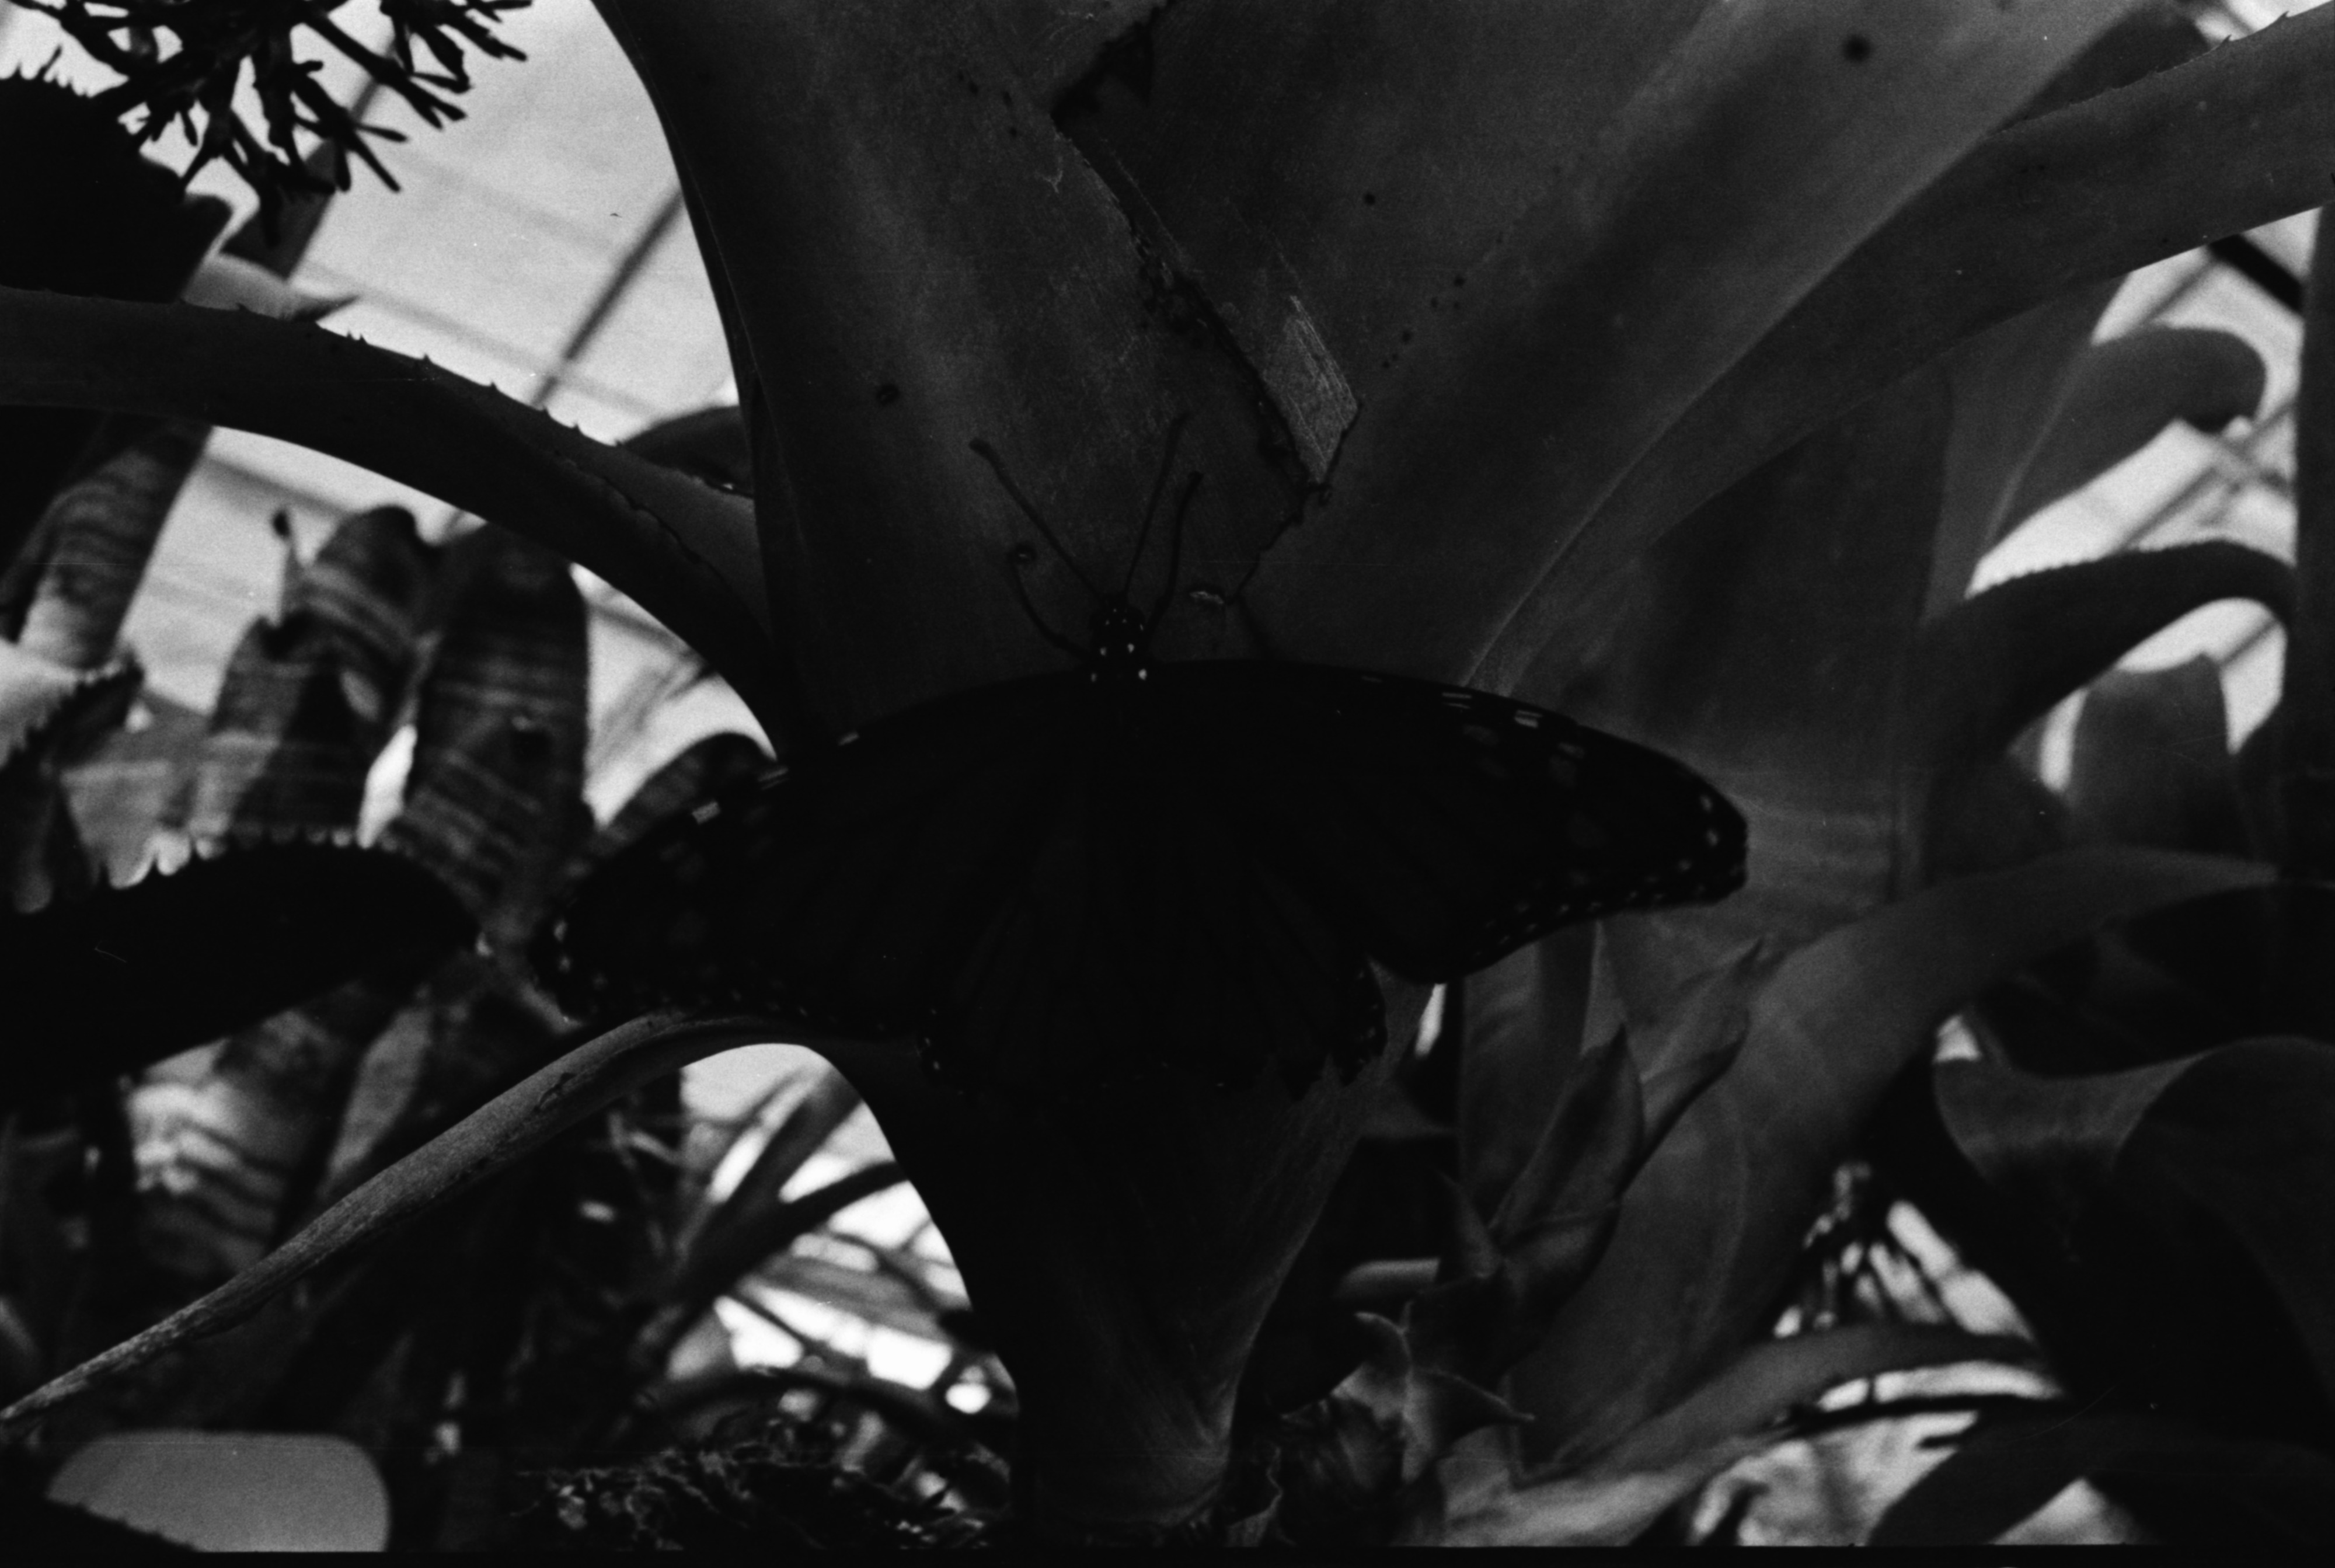 Monarch Butterfly on Plant, September 1970 image